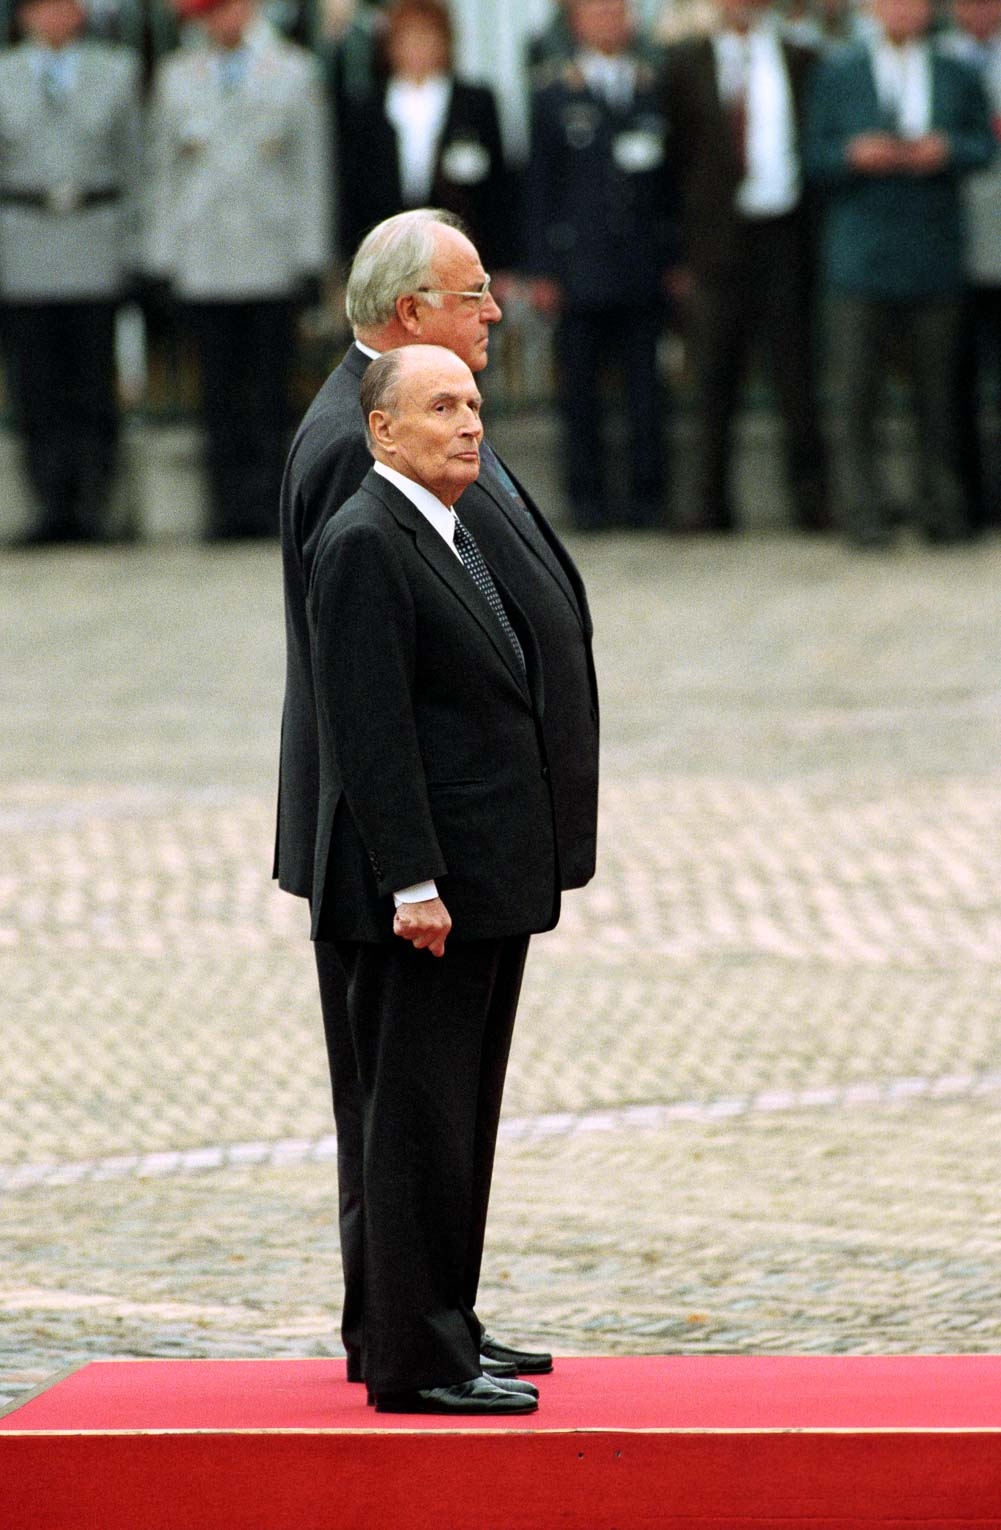 Francois Mitterand, President of the French Republic, and Helmut Kohl, Chancellor of the Federal Republic of Germany (Berlin, 1990). Photo © Aris Fotografie